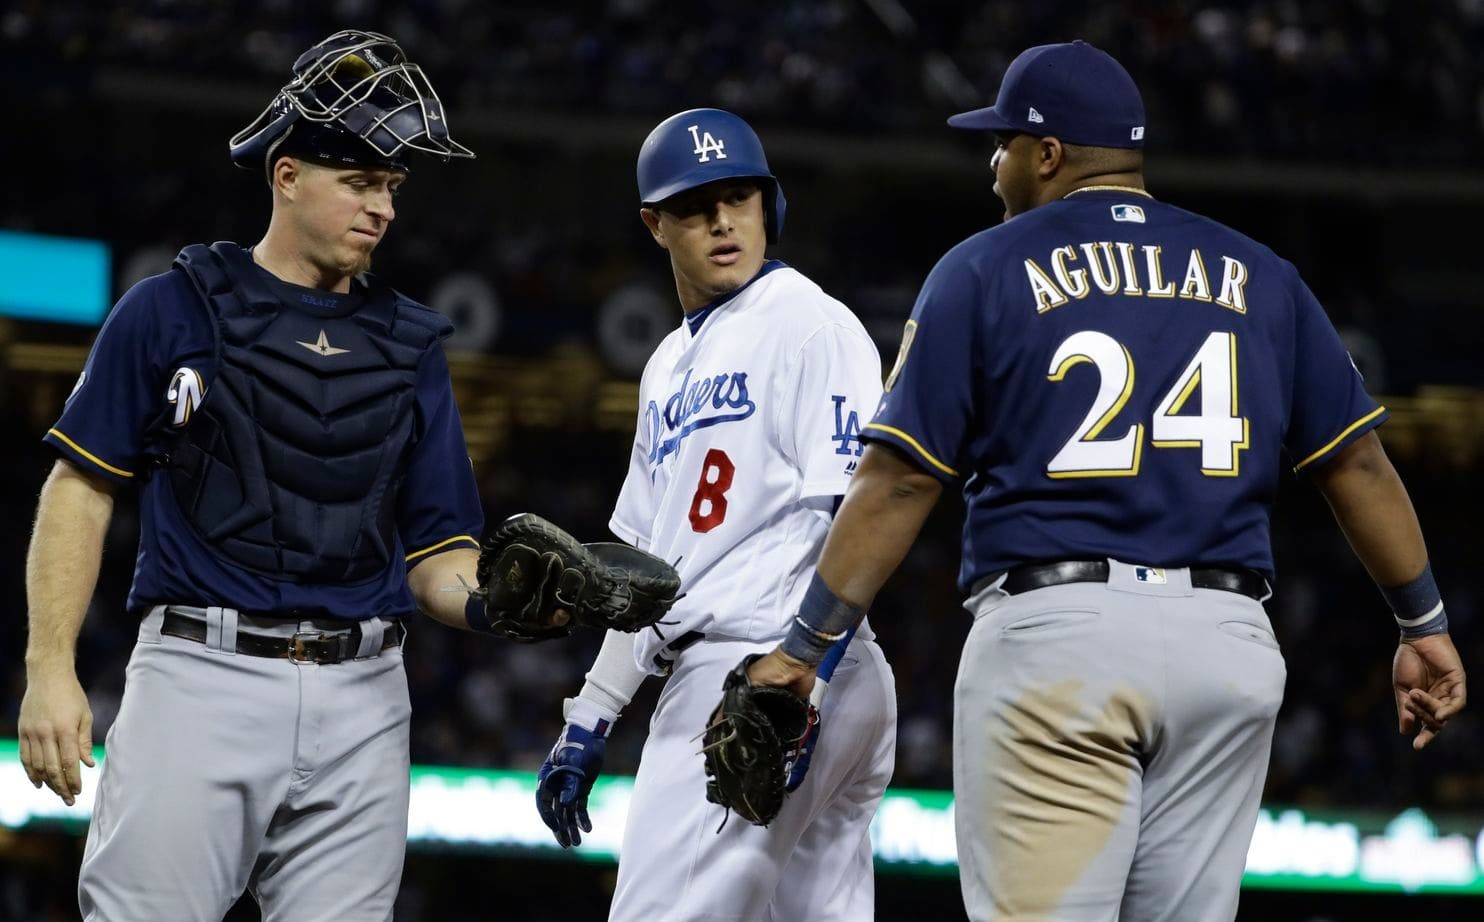 1Jesus Aguilar confronts Manny Machado after being kicked in the leg in game 4. https://www.washingtonpost.com/sports/2018/10/17/christian-yelich-calls-manny-machado-dirty-player-after-game-incident-machado-says-he-is-just-playing-baseball/?noredirect=on&utm_term=.e0889d3839a0